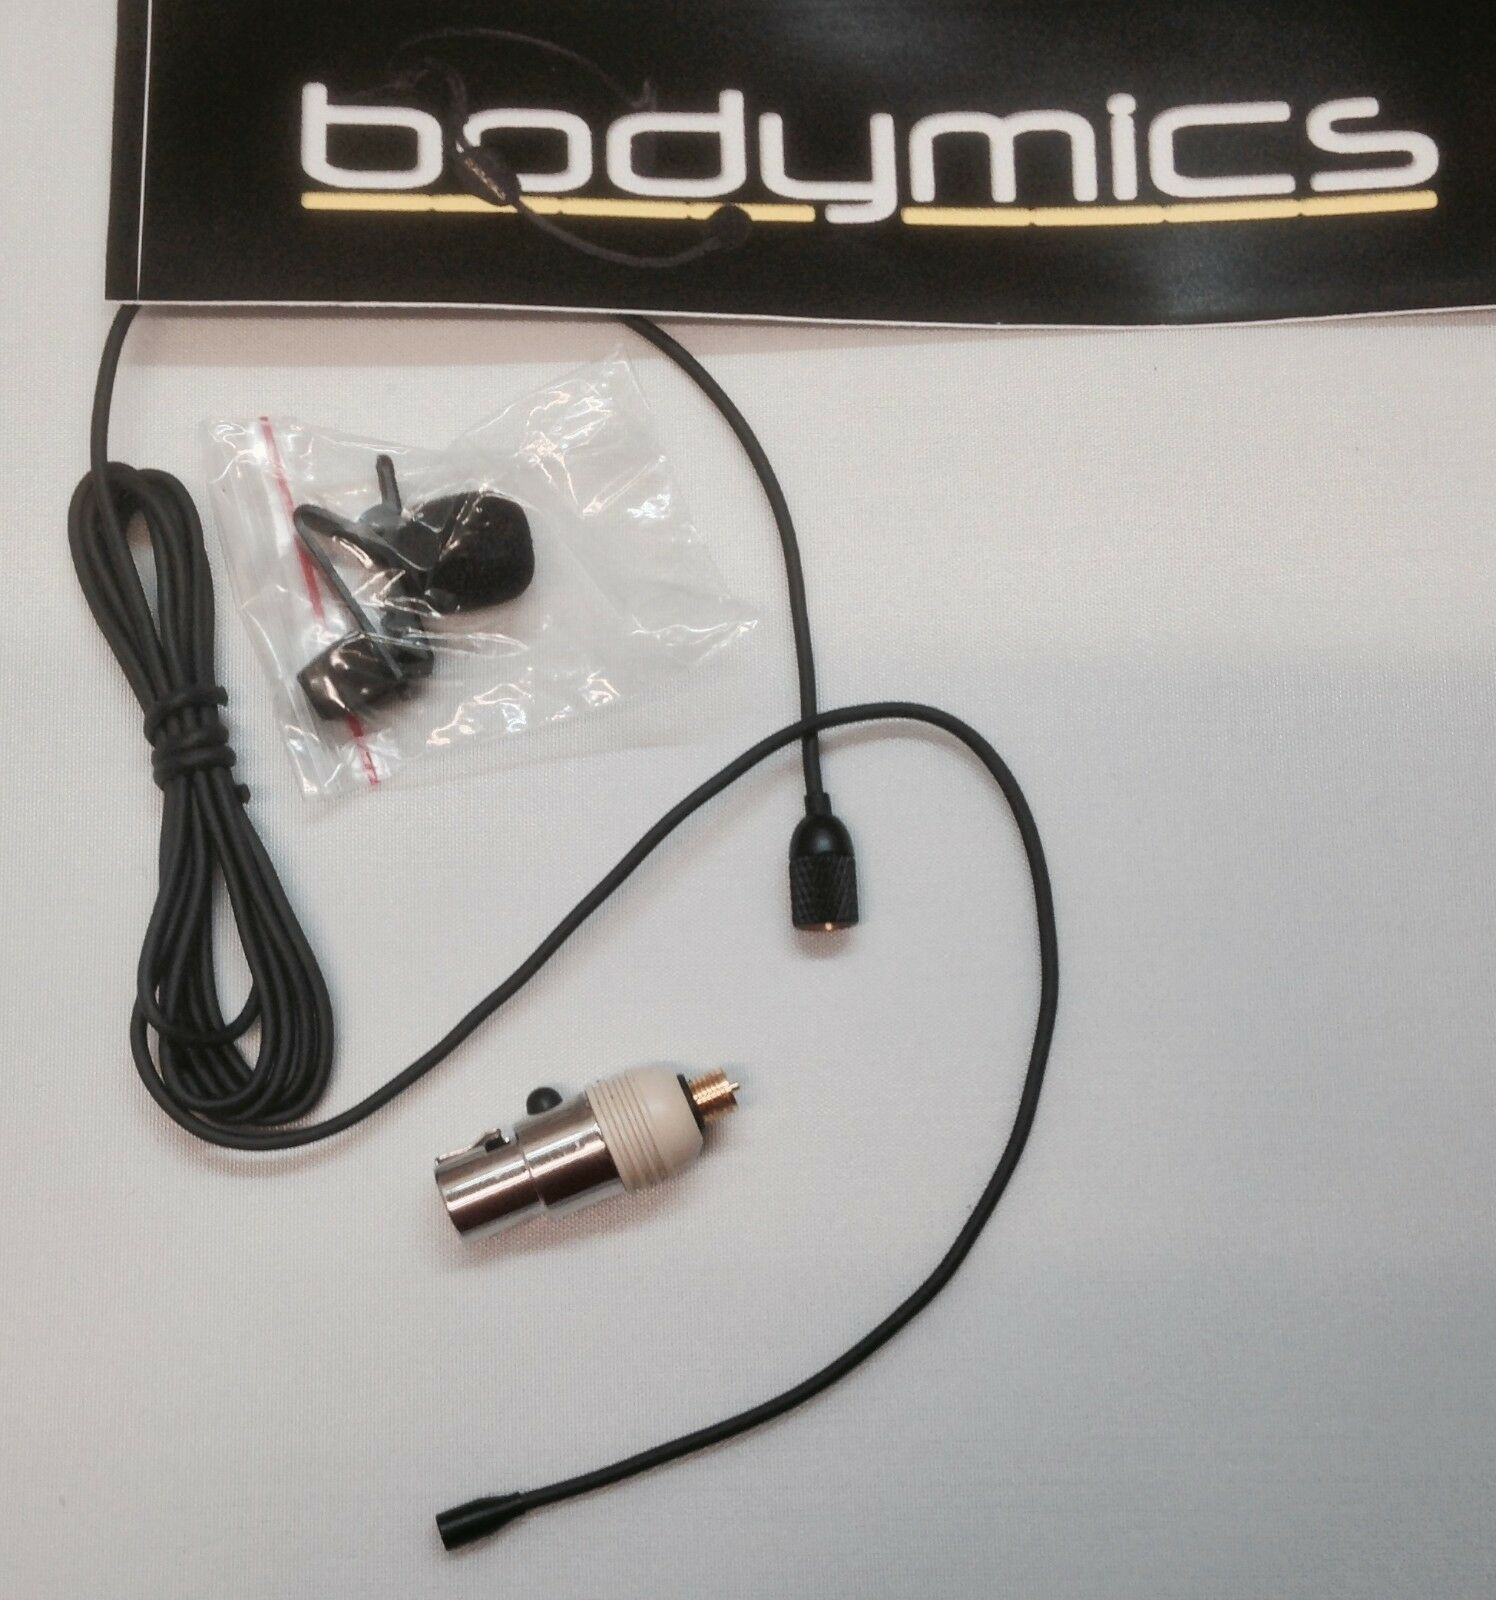 DLF3b-SH Tiny Omnidirectional lavalier microphone Shure, Carvin, Line6 wireless